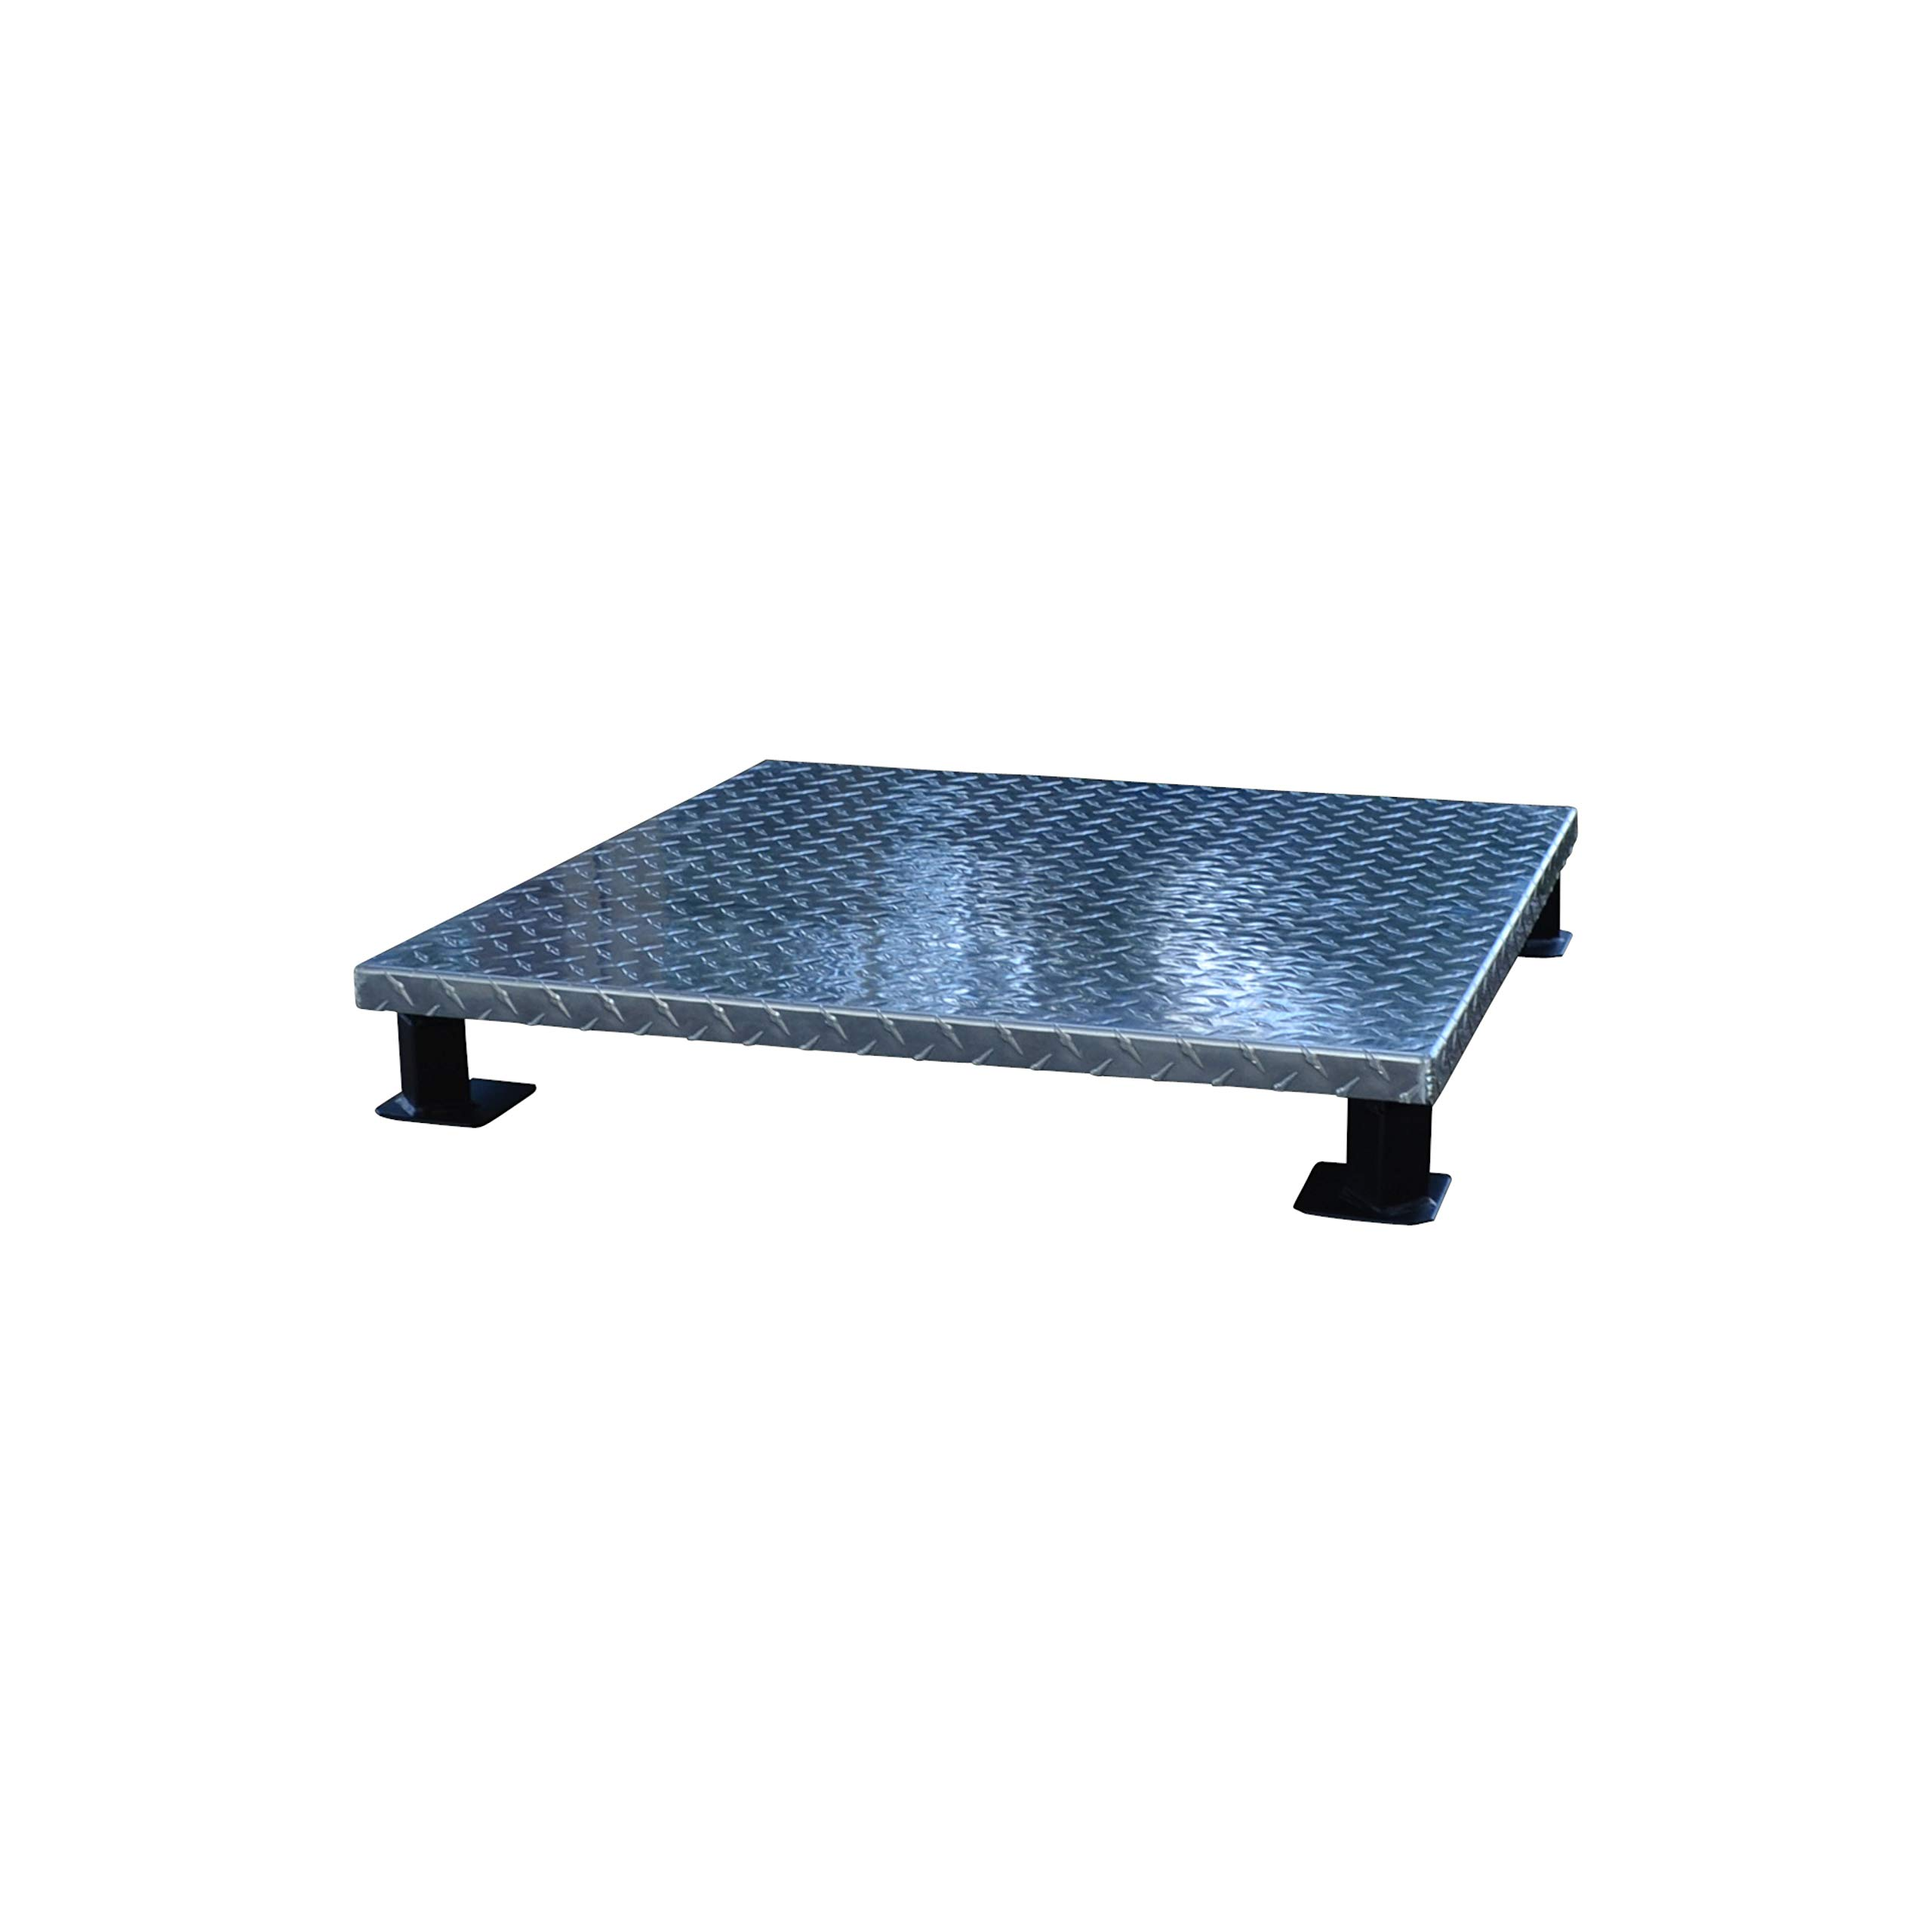 Titan Great Outdoors Fire Pit Heat Shield for Fire Ring by Titan Distributors Inc.